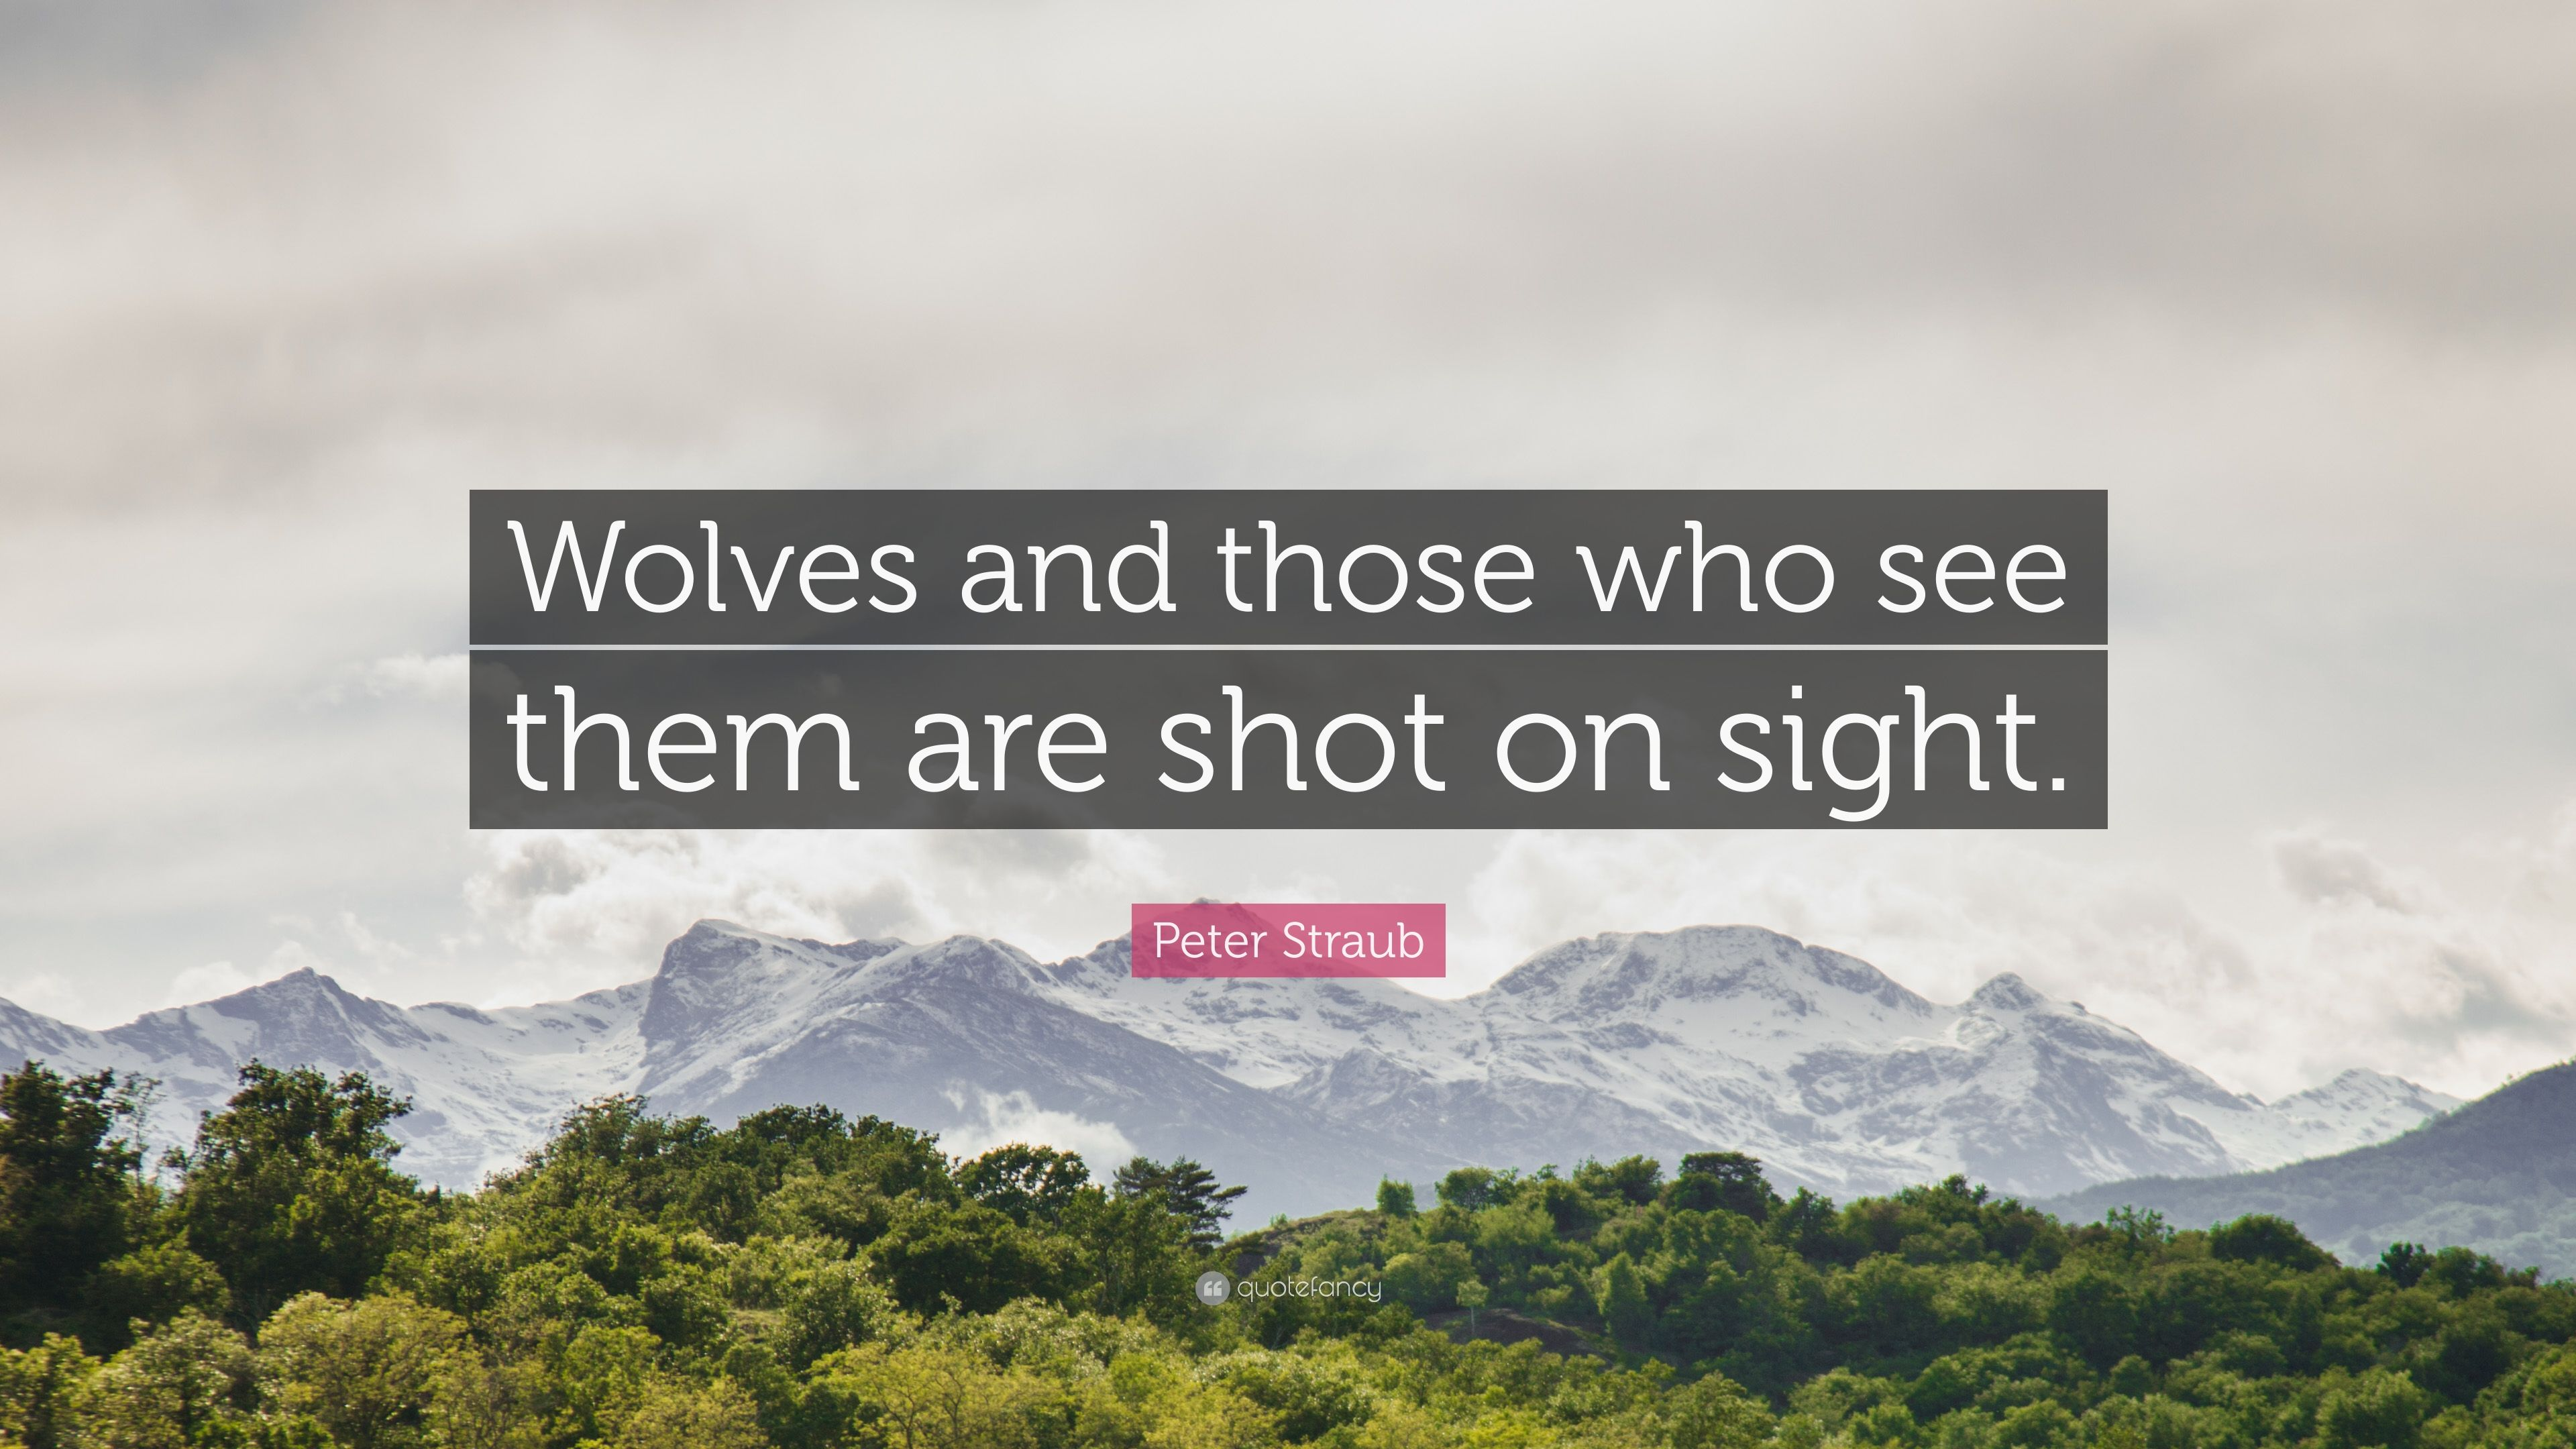 3371934-Peter-Straub-Quote-Wolves-and-those-who-see-them-are-shot-on-sight.jpg